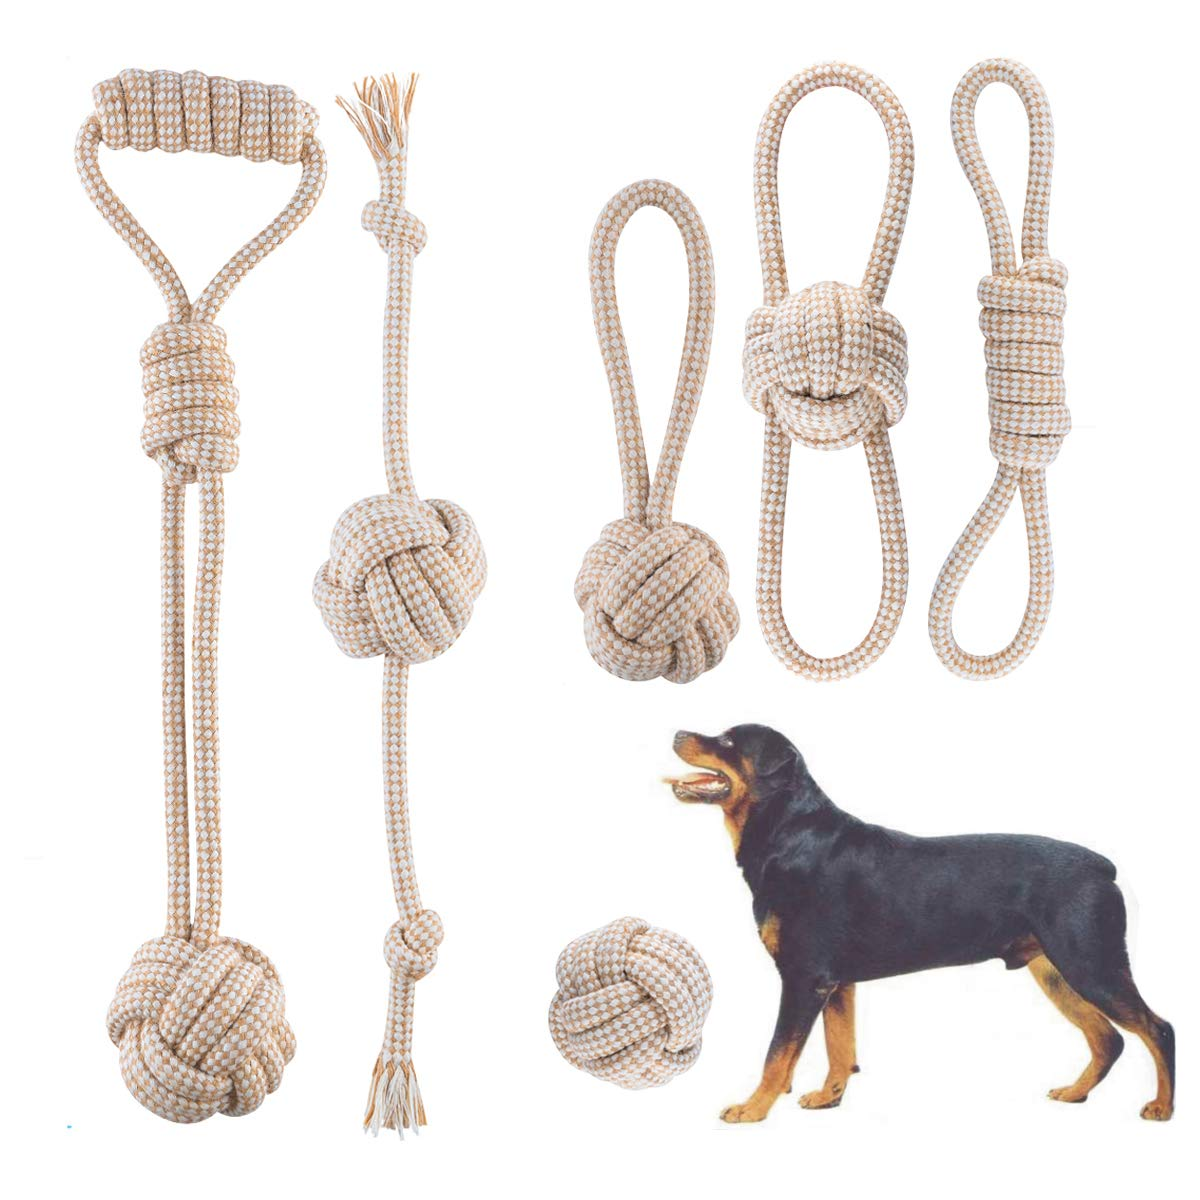 FONPOO Puppy Chew Toys, Premium Cotton Dog Rope Toys Interactive Game Tug of War Meet The Dog Teething is The Chewers Demand Relieve The Dogs Boredom for Medium and Small Dogs Dog Gift Set by FONPOO